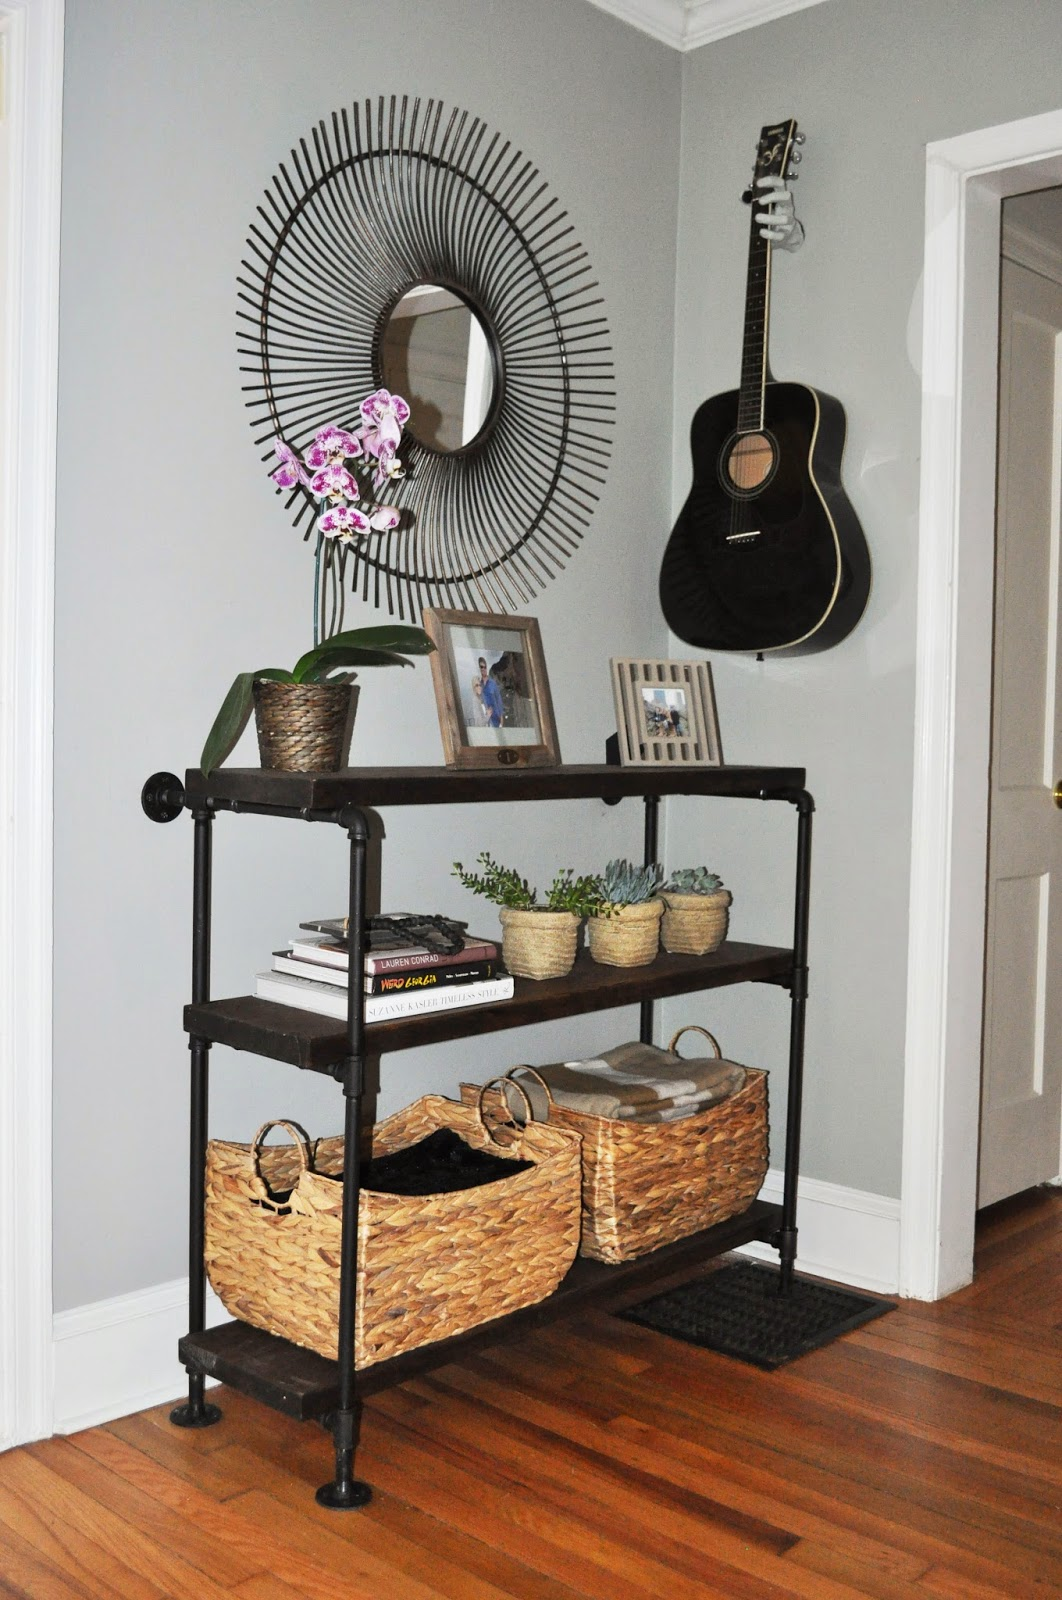 the cow spot diy console table. Black Bedroom Furniture Sets. Home Design Ideas